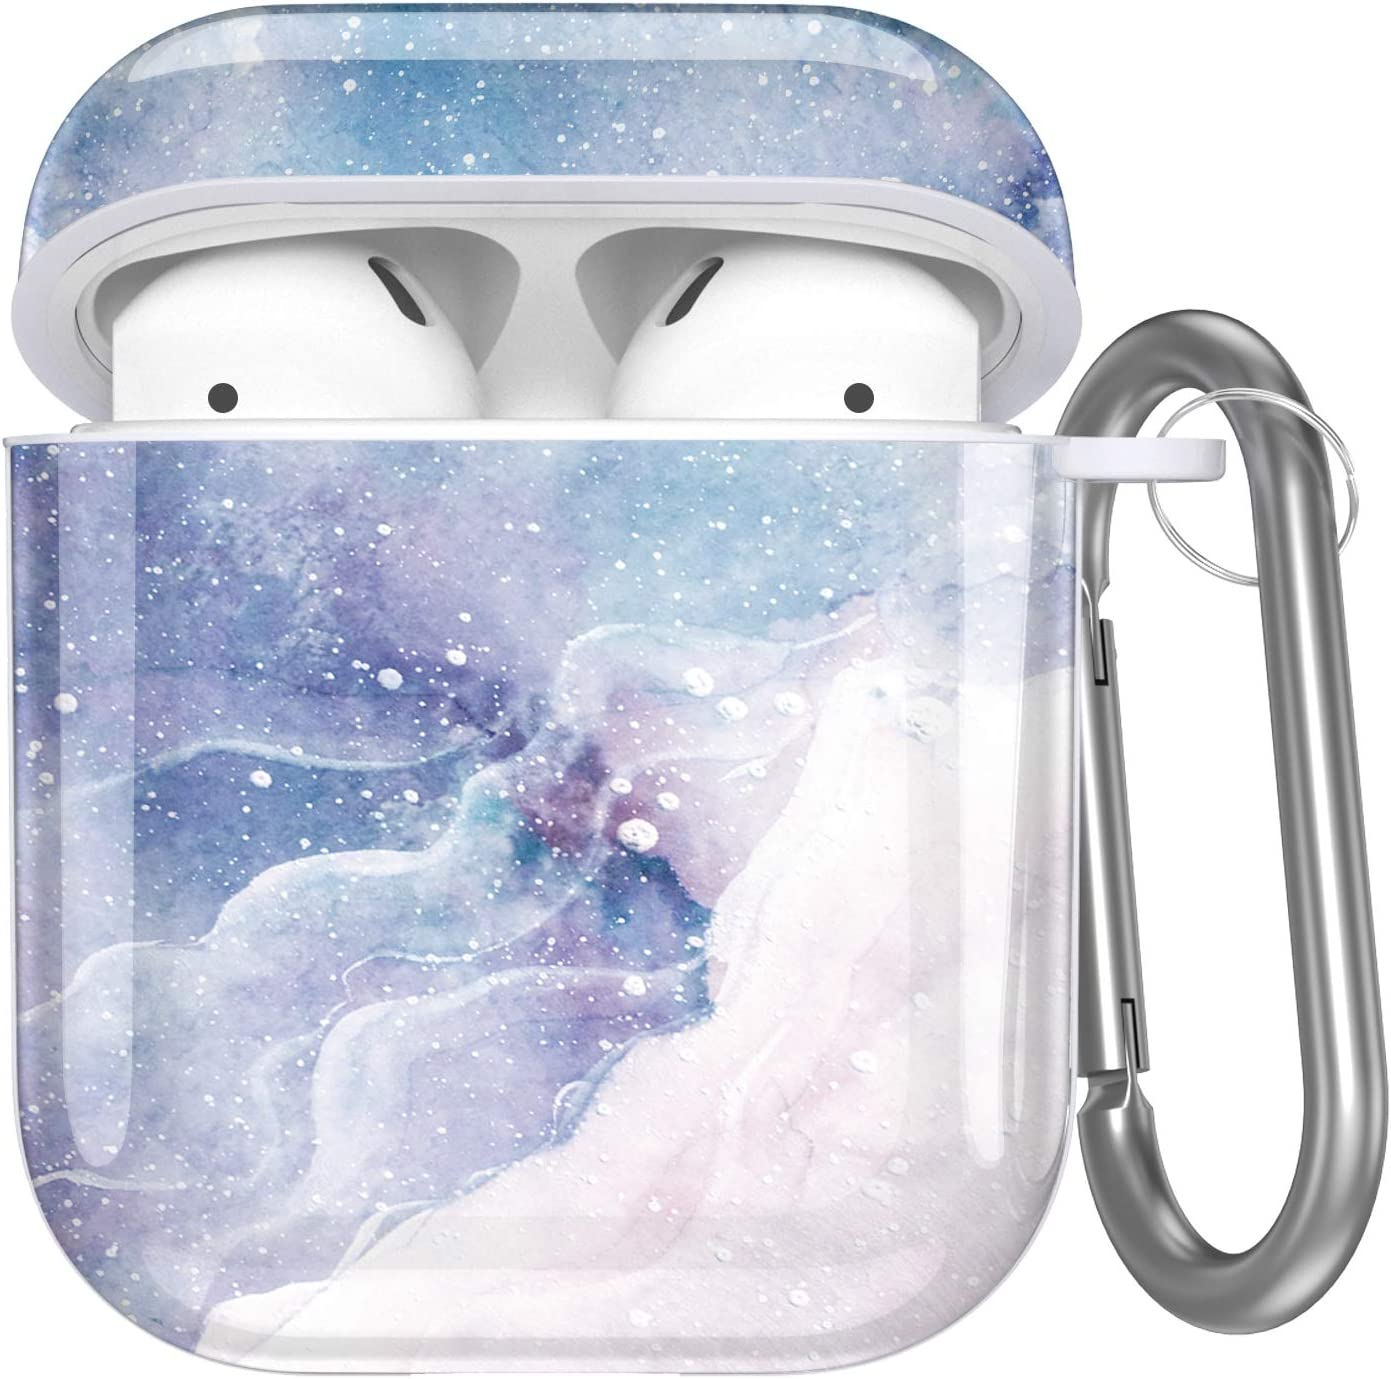 Hamile Compatible with Airpods Case Cover Cute Protective Case for Apple Airpods 2 & 1, Fadeless Pattern Shockproof Hard Case Cover with Portable Keychain for Girls Women Men - Dream Snow